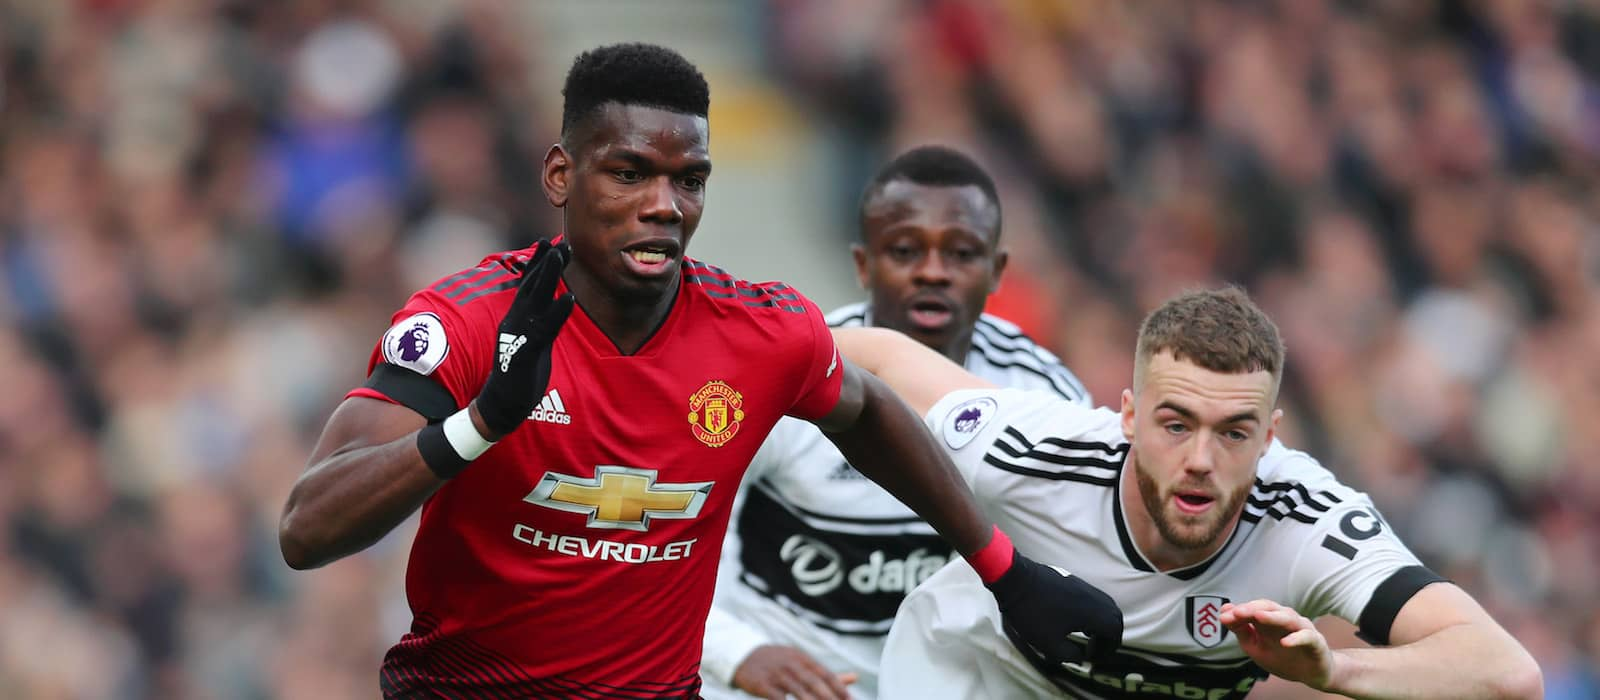 Manchester United fans react to Paul Pogba's performance vs Fulham